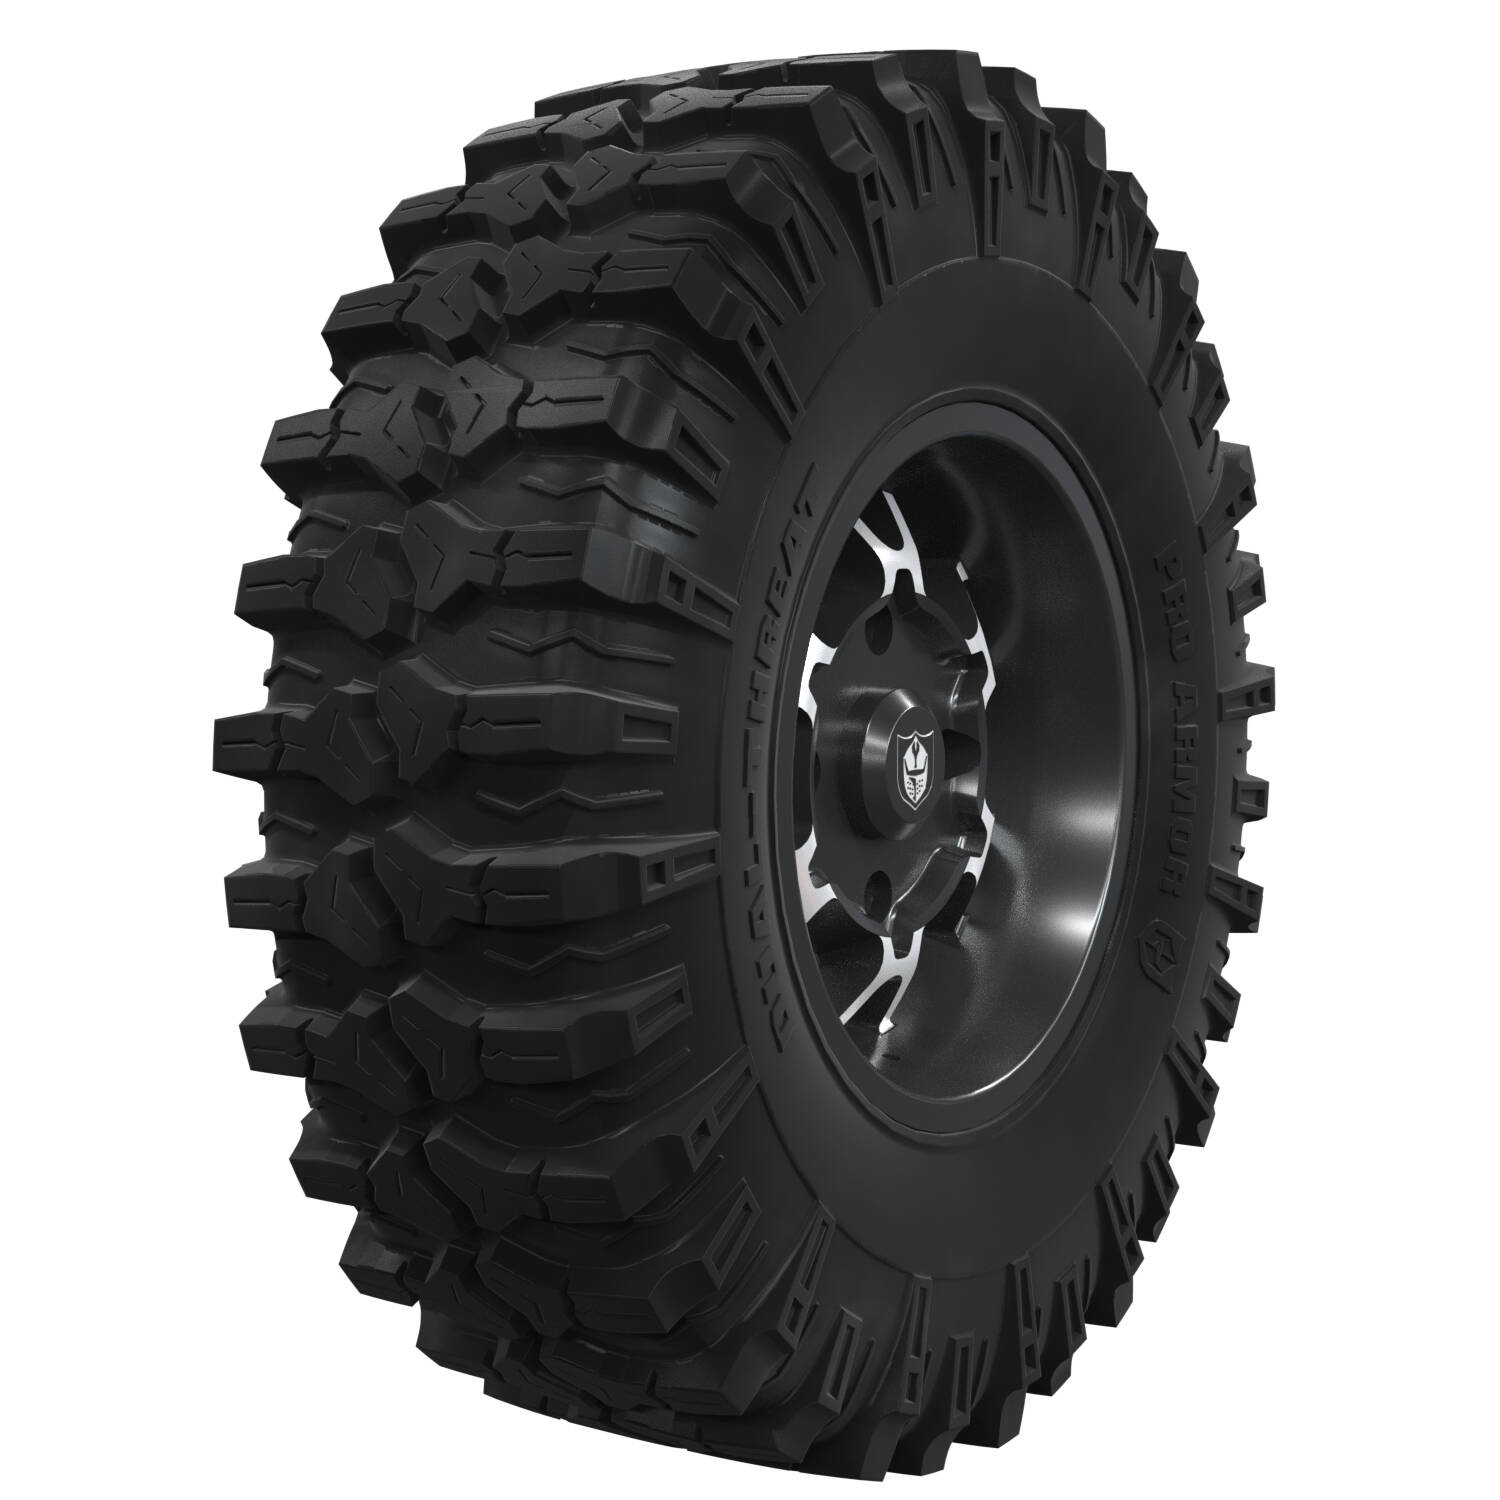 "Pro Armor® Wheel & Tire Set: Cyclone - Accent - 15"" & Dual-Threat 32"""